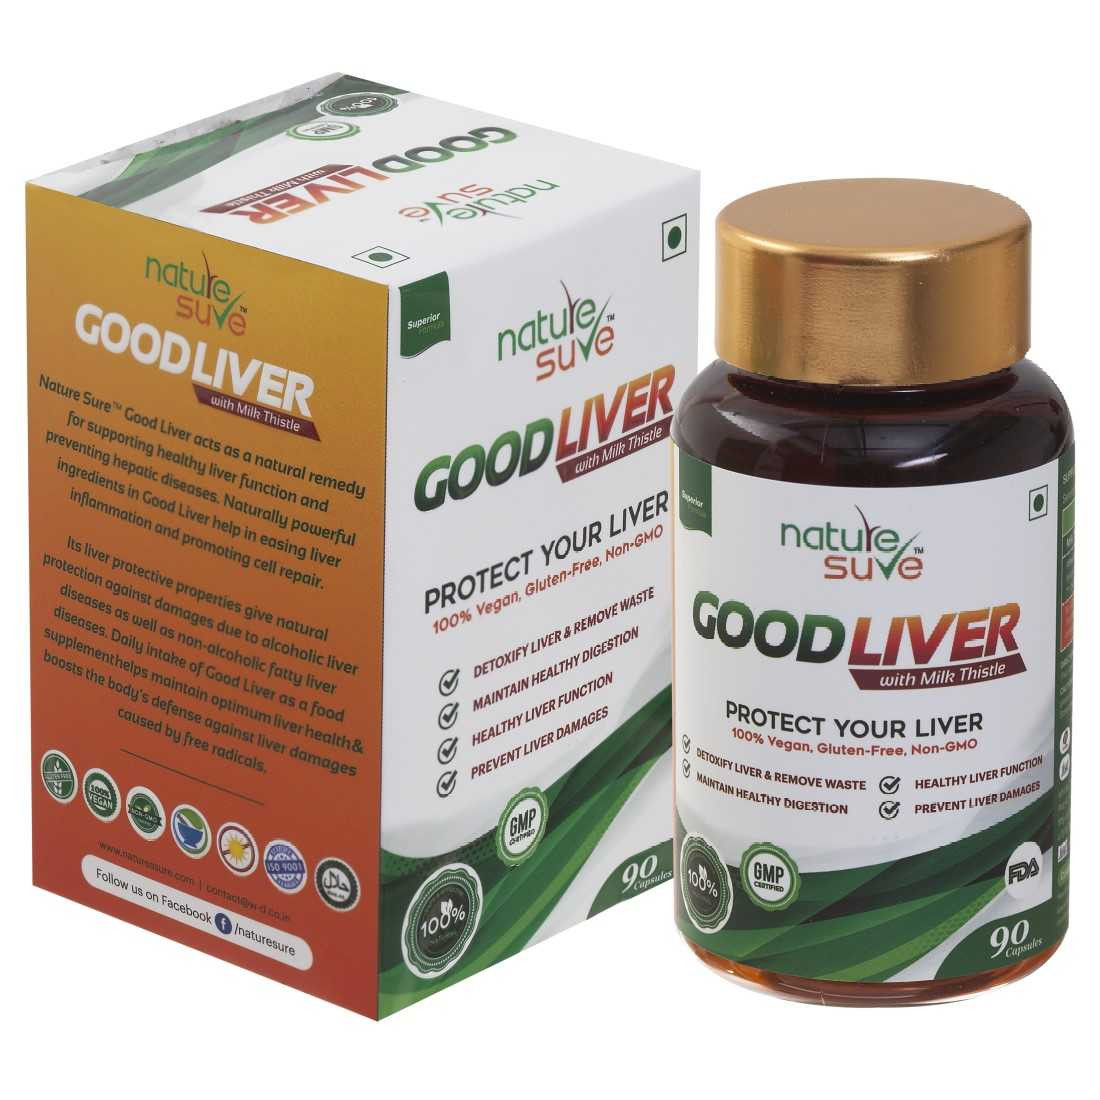 Nature Sure™ Good Liver Capsules With Milk Thistle 1 Pack (90 Capsules) – for promoting healthy digestion and natural protection against fatty liver